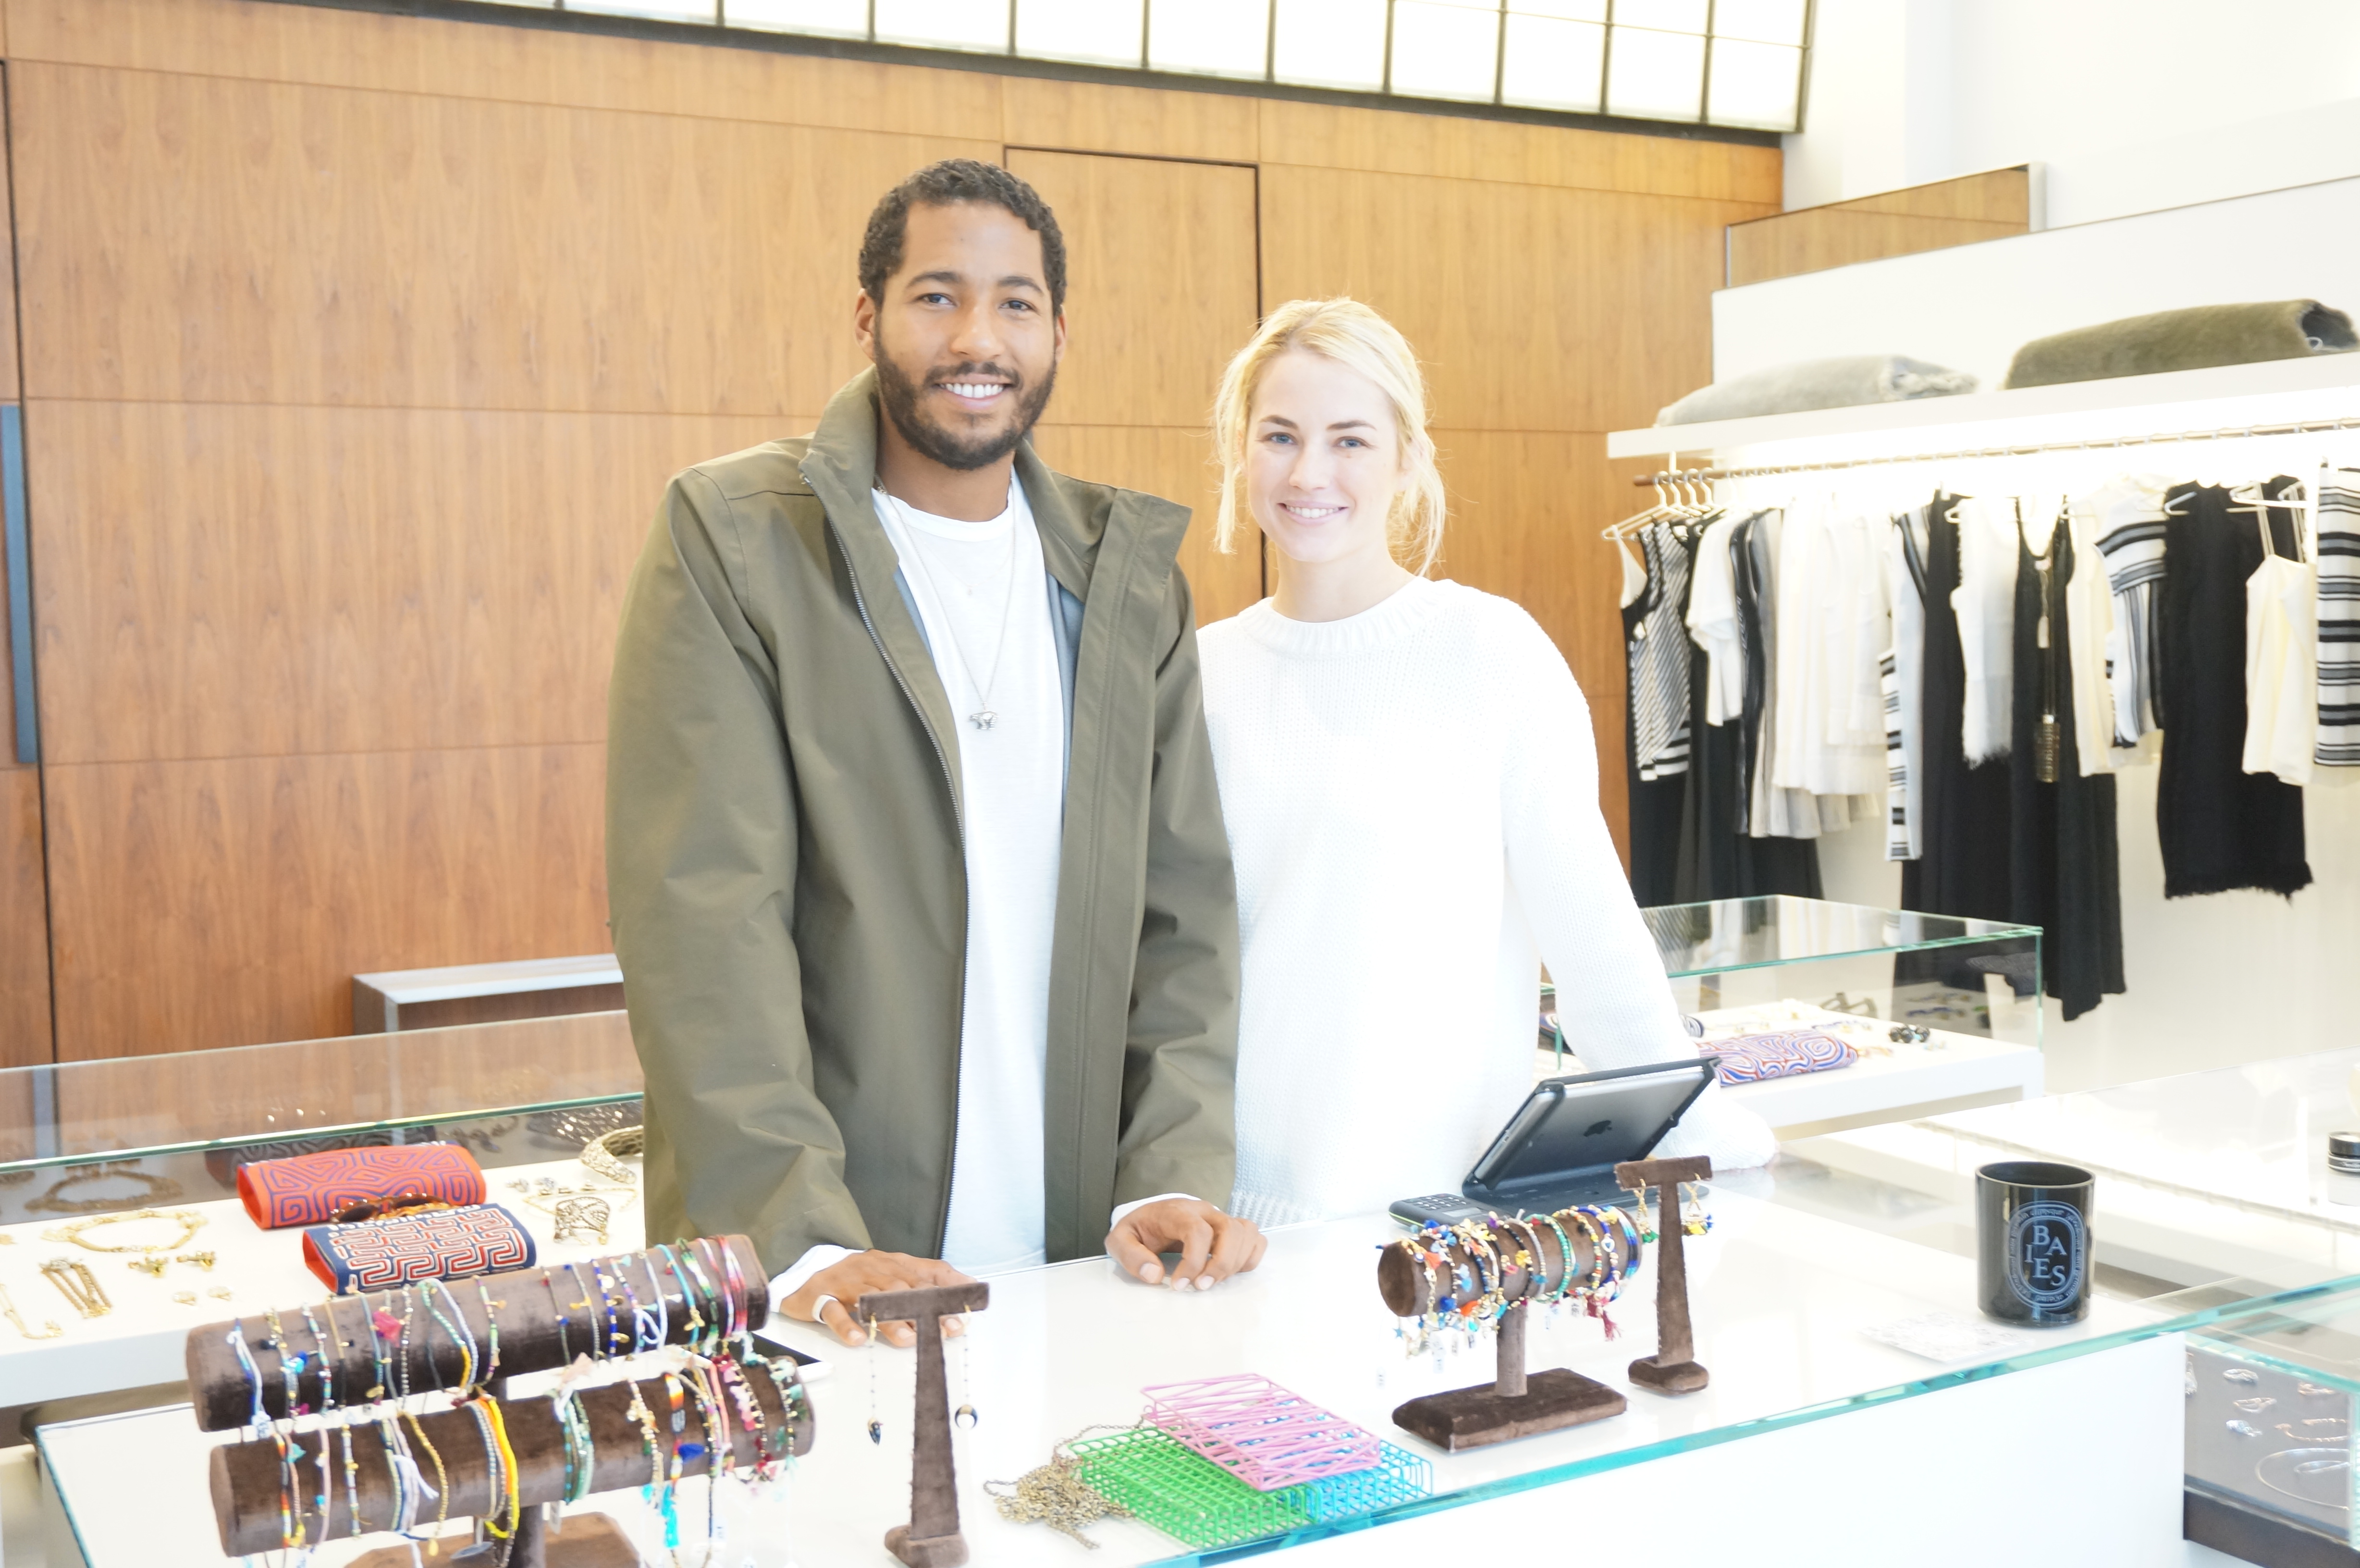 Maison de Mode takes its online ethical luxury fashion brand to an ...